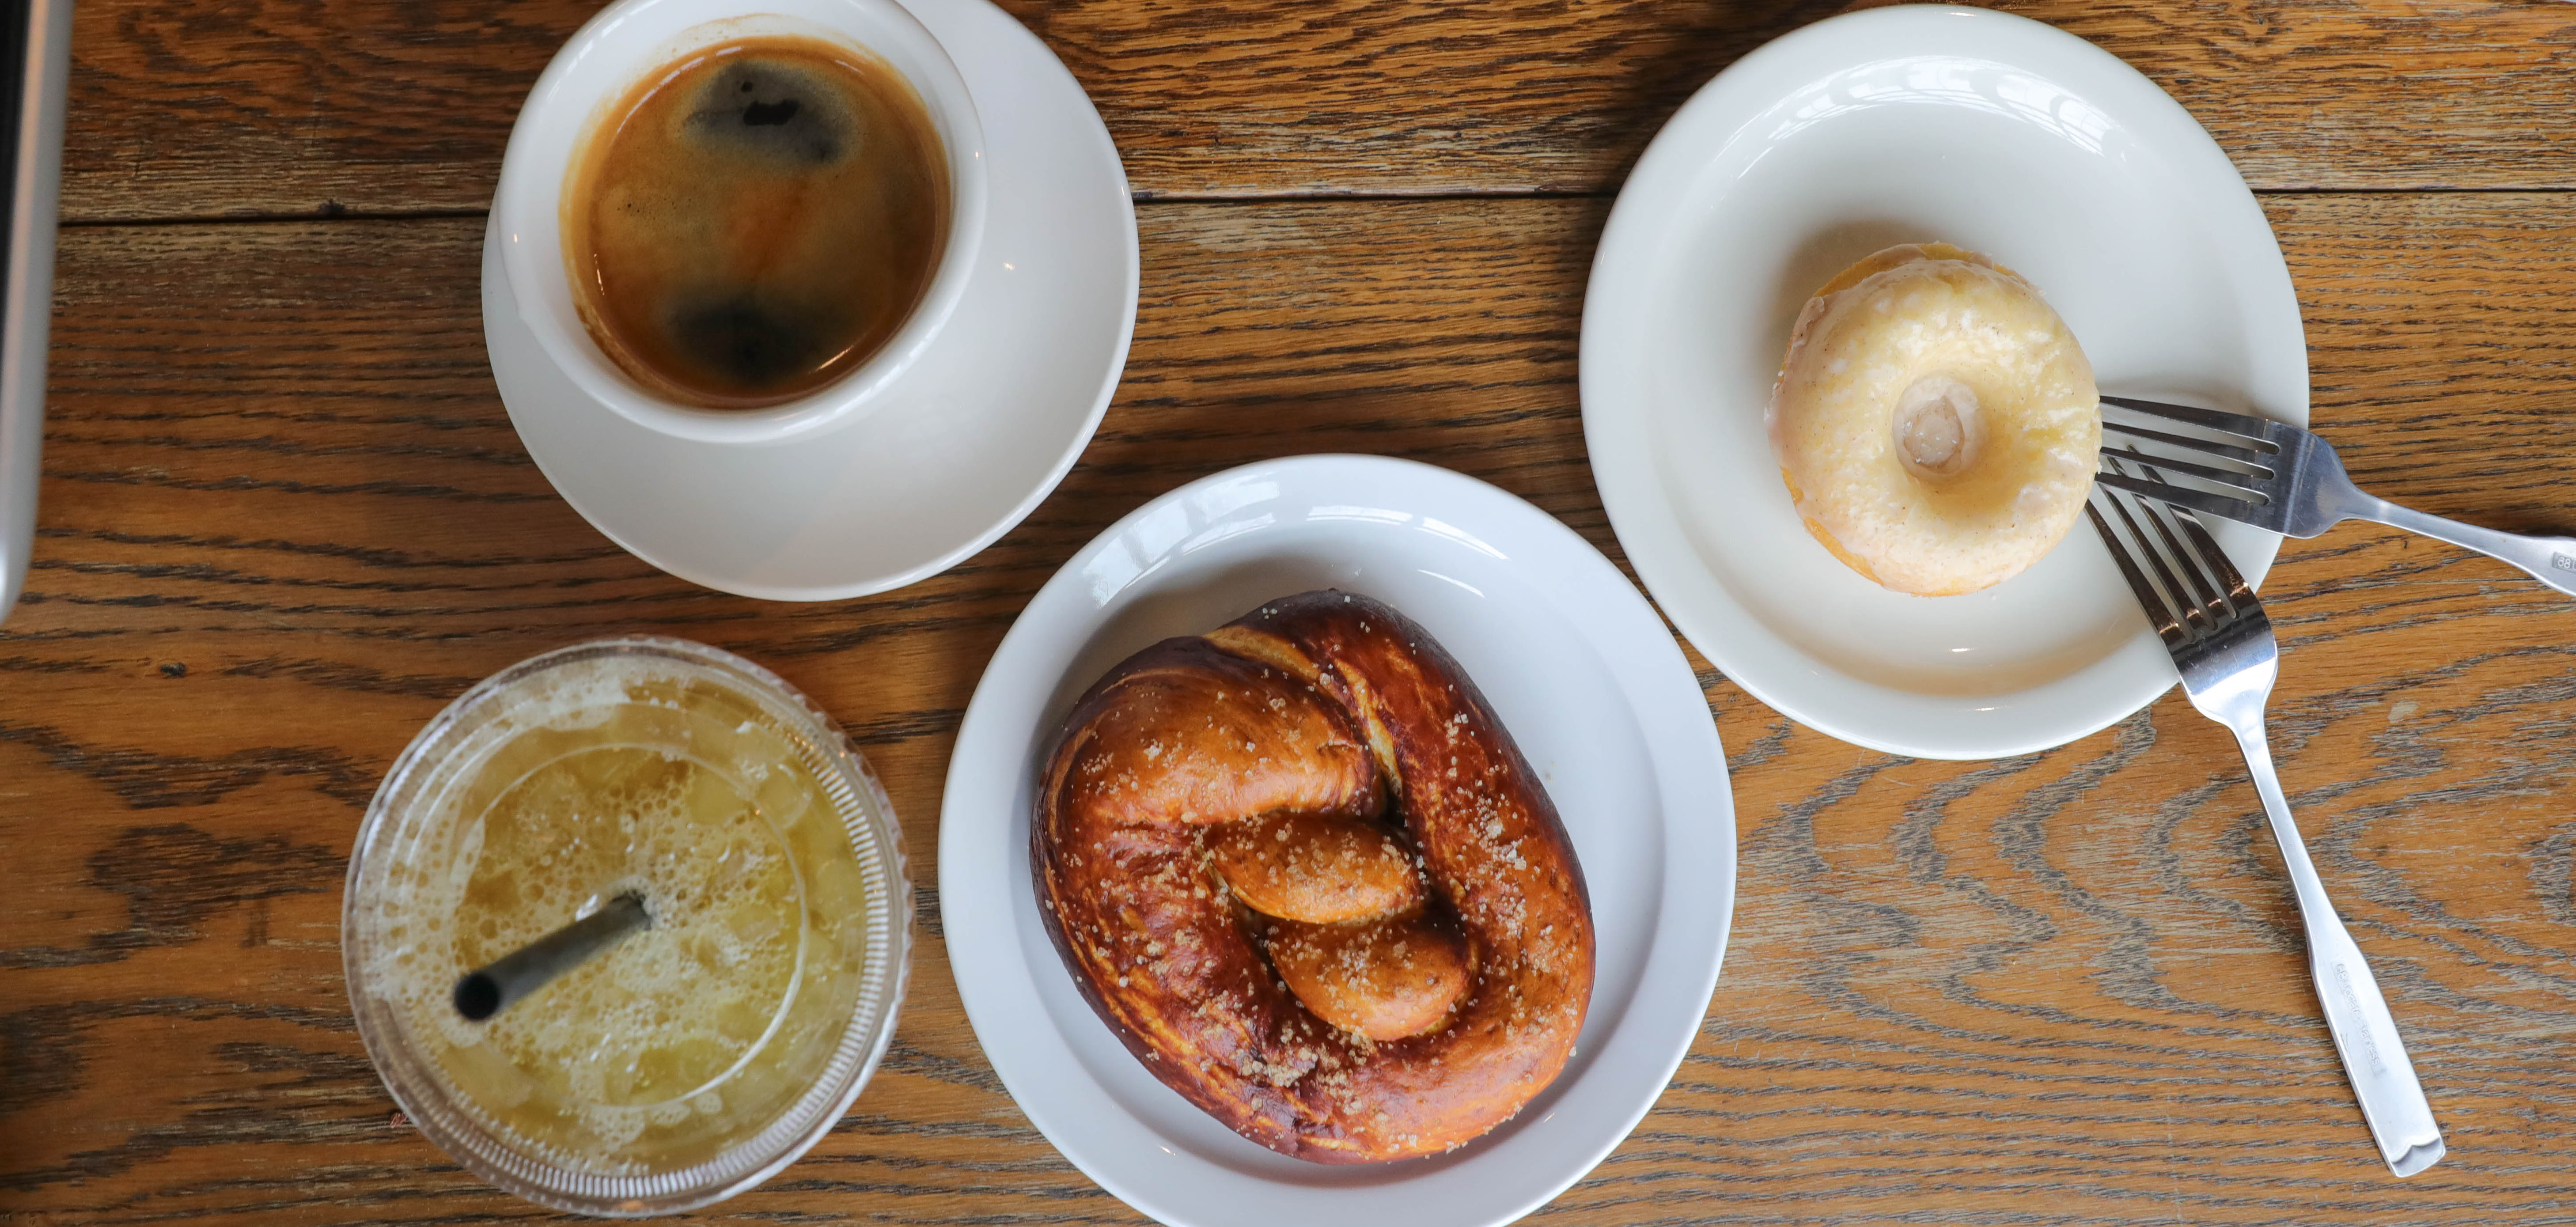 A pretzel, donut, coffee, and iced tea sit on a wooden table at DoubleShot Coffee in Tulsa, Oklahoma.